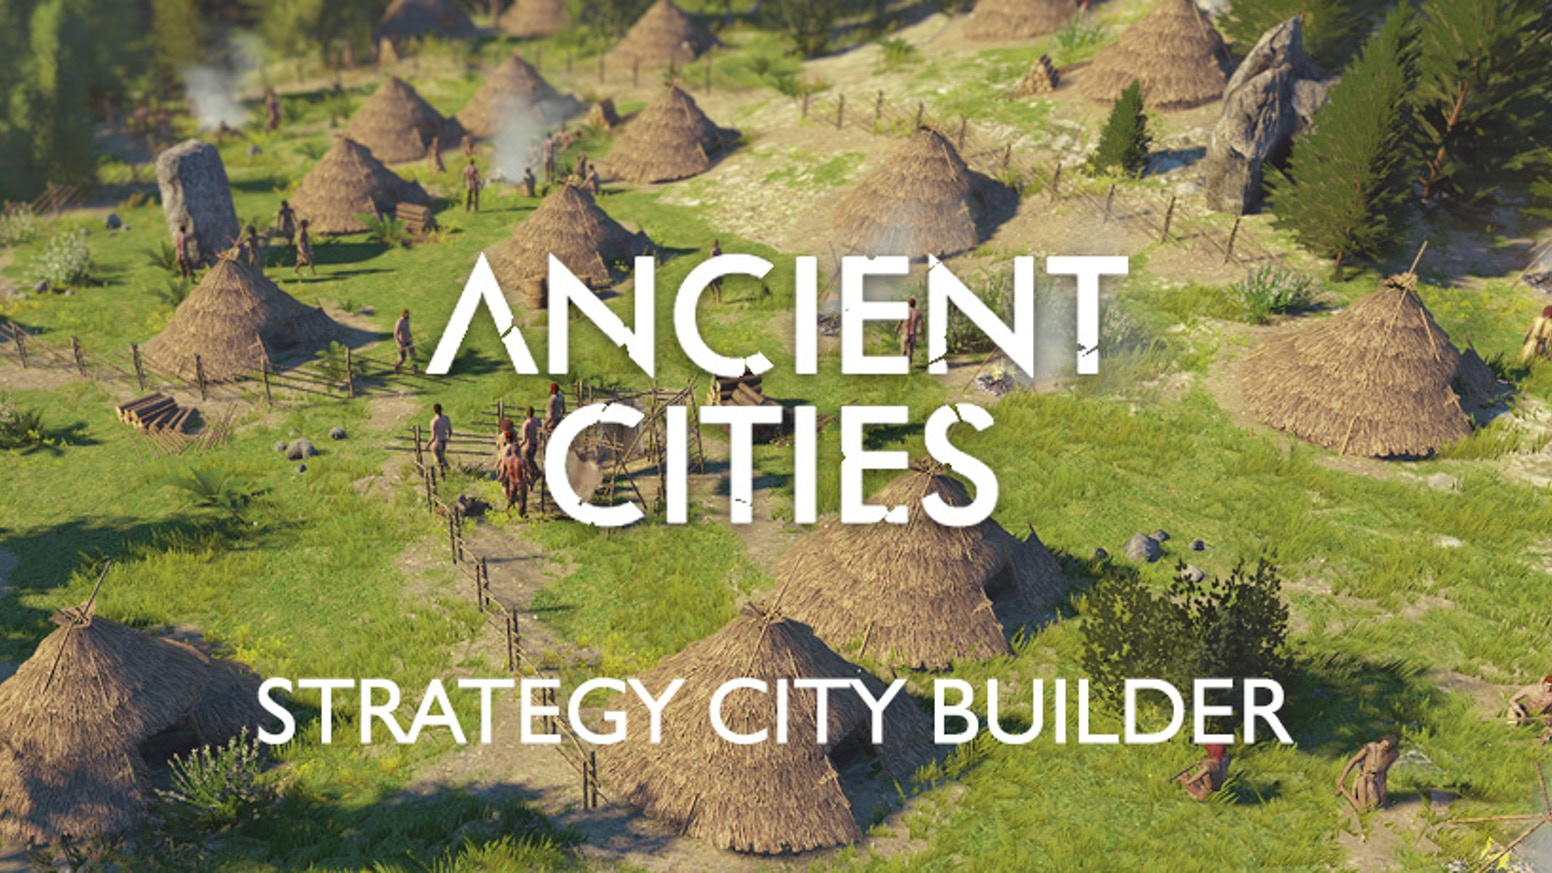 Ancient Cities is a strategy survival city builder PC game through the ages, strongly focused on history and realism. Now on Indiegogo. Please, support us!